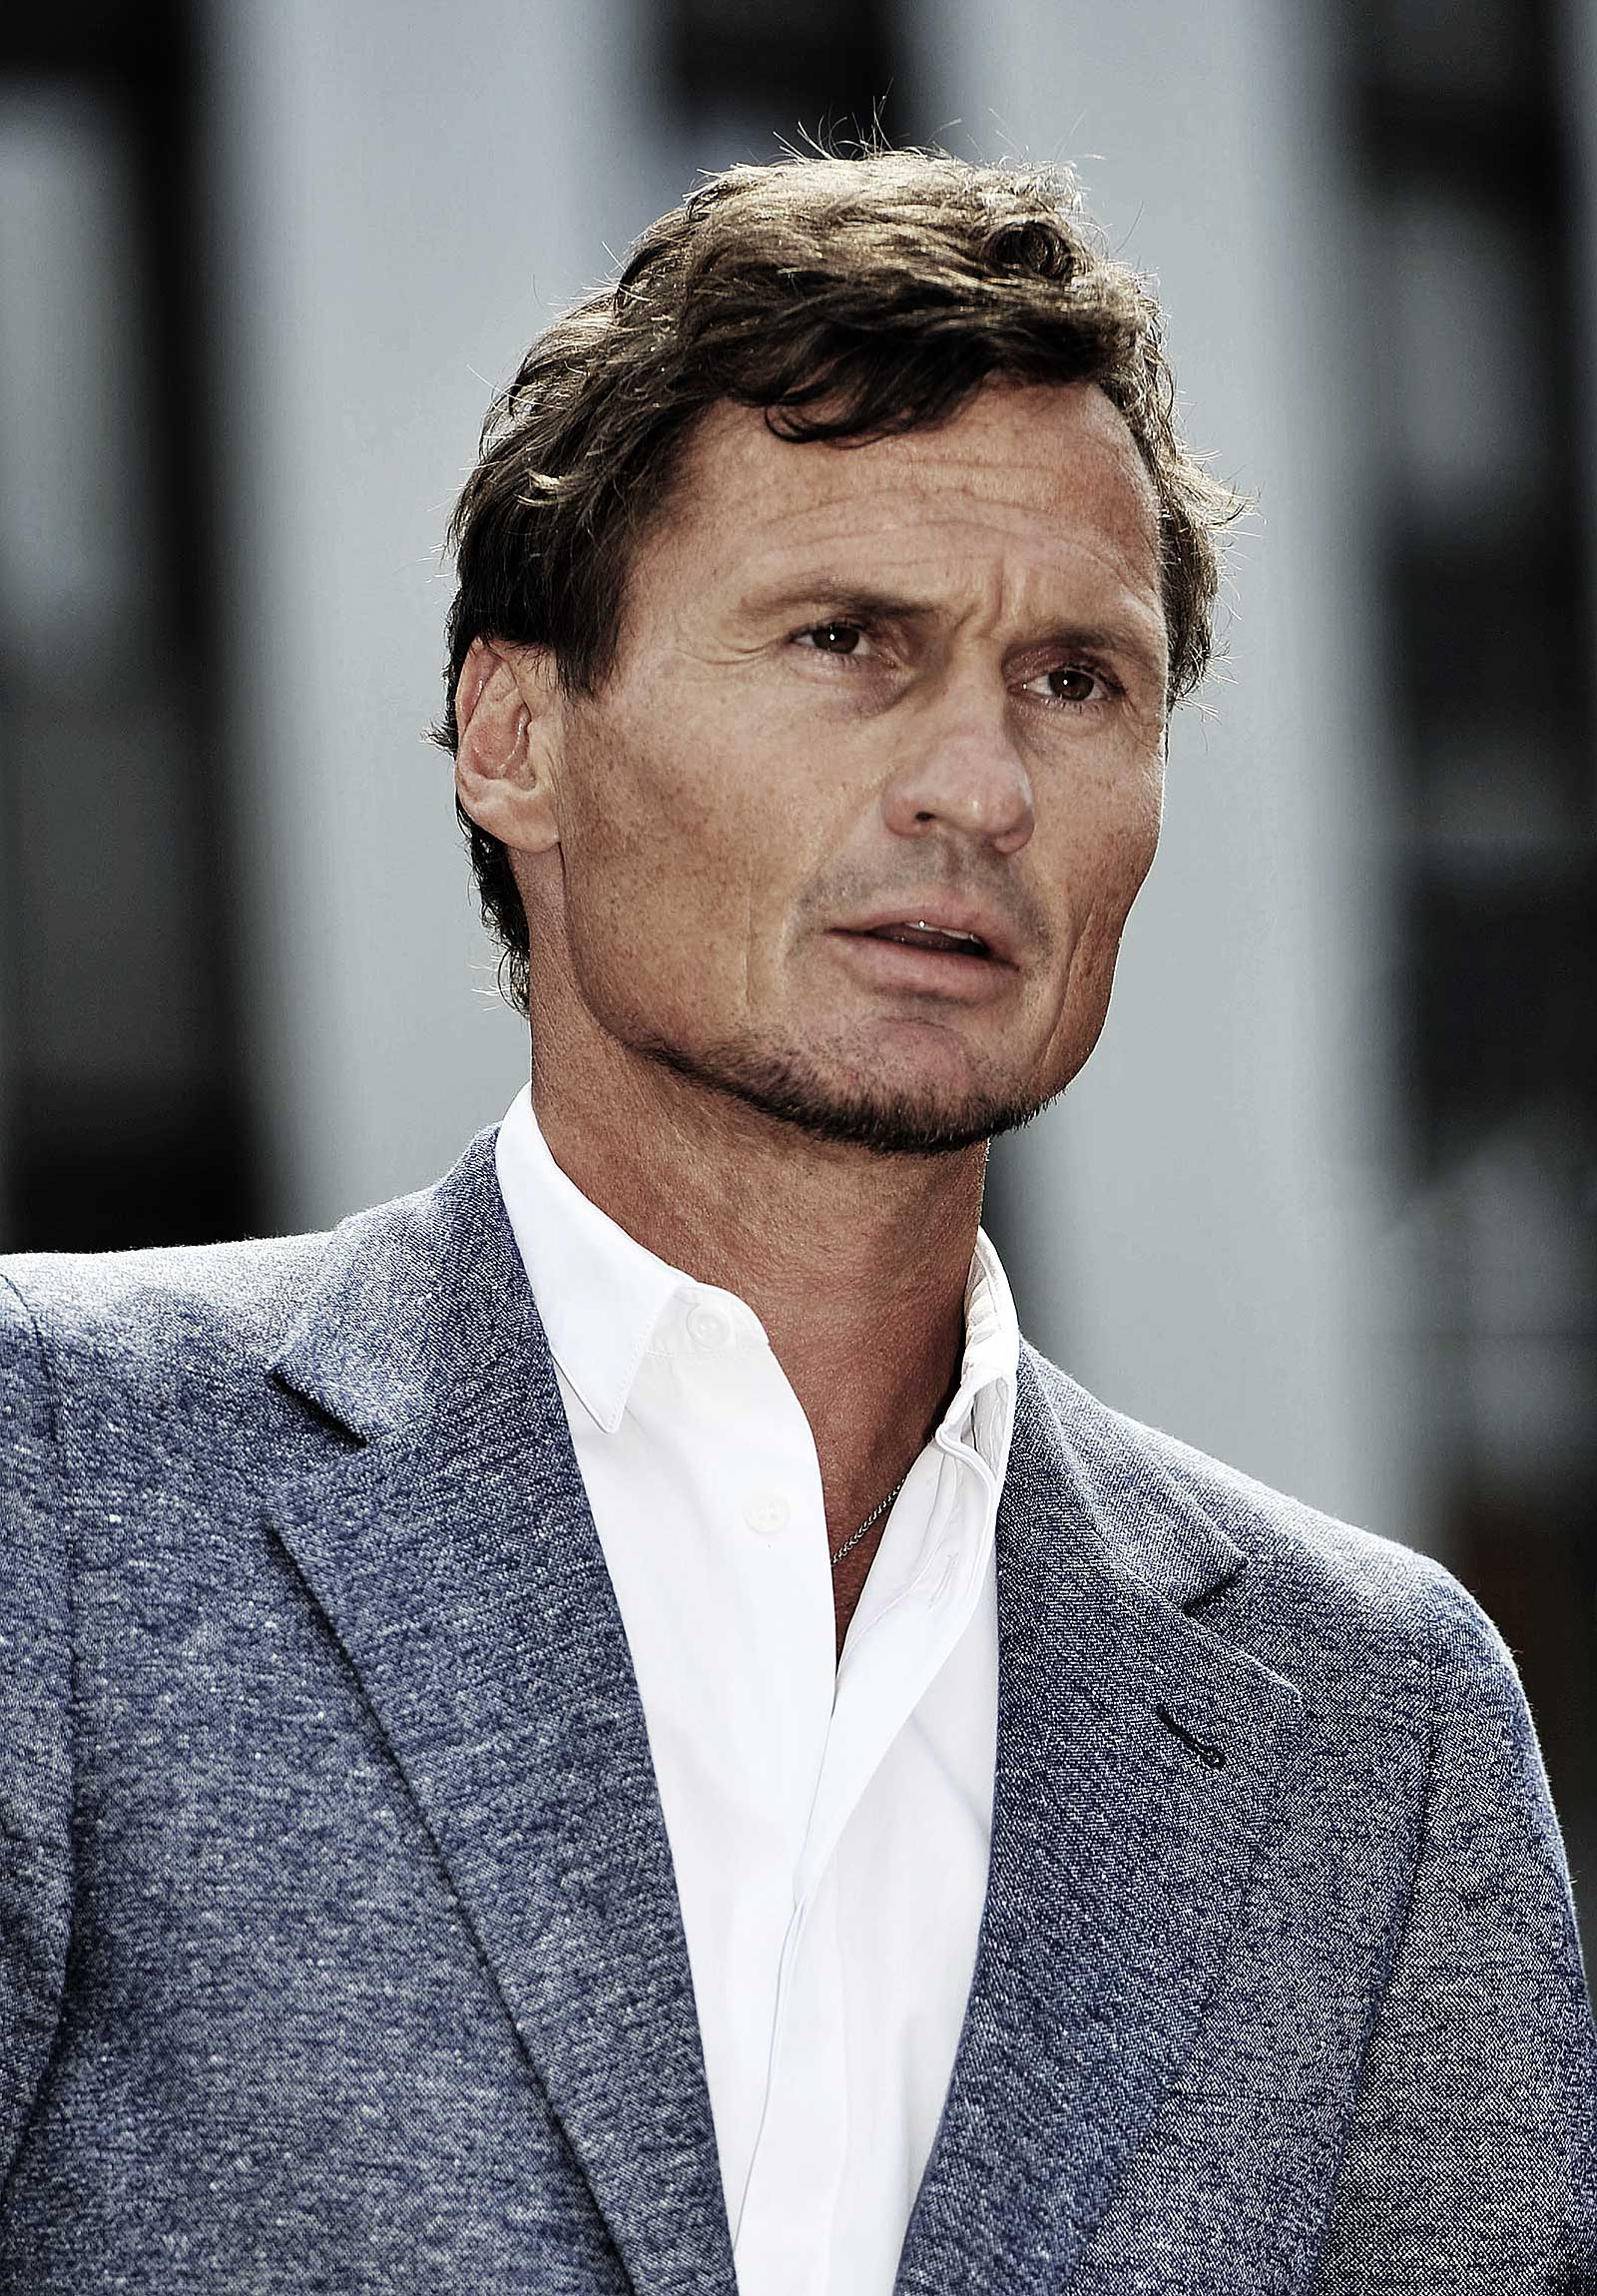 stordalen_bluejacket_web